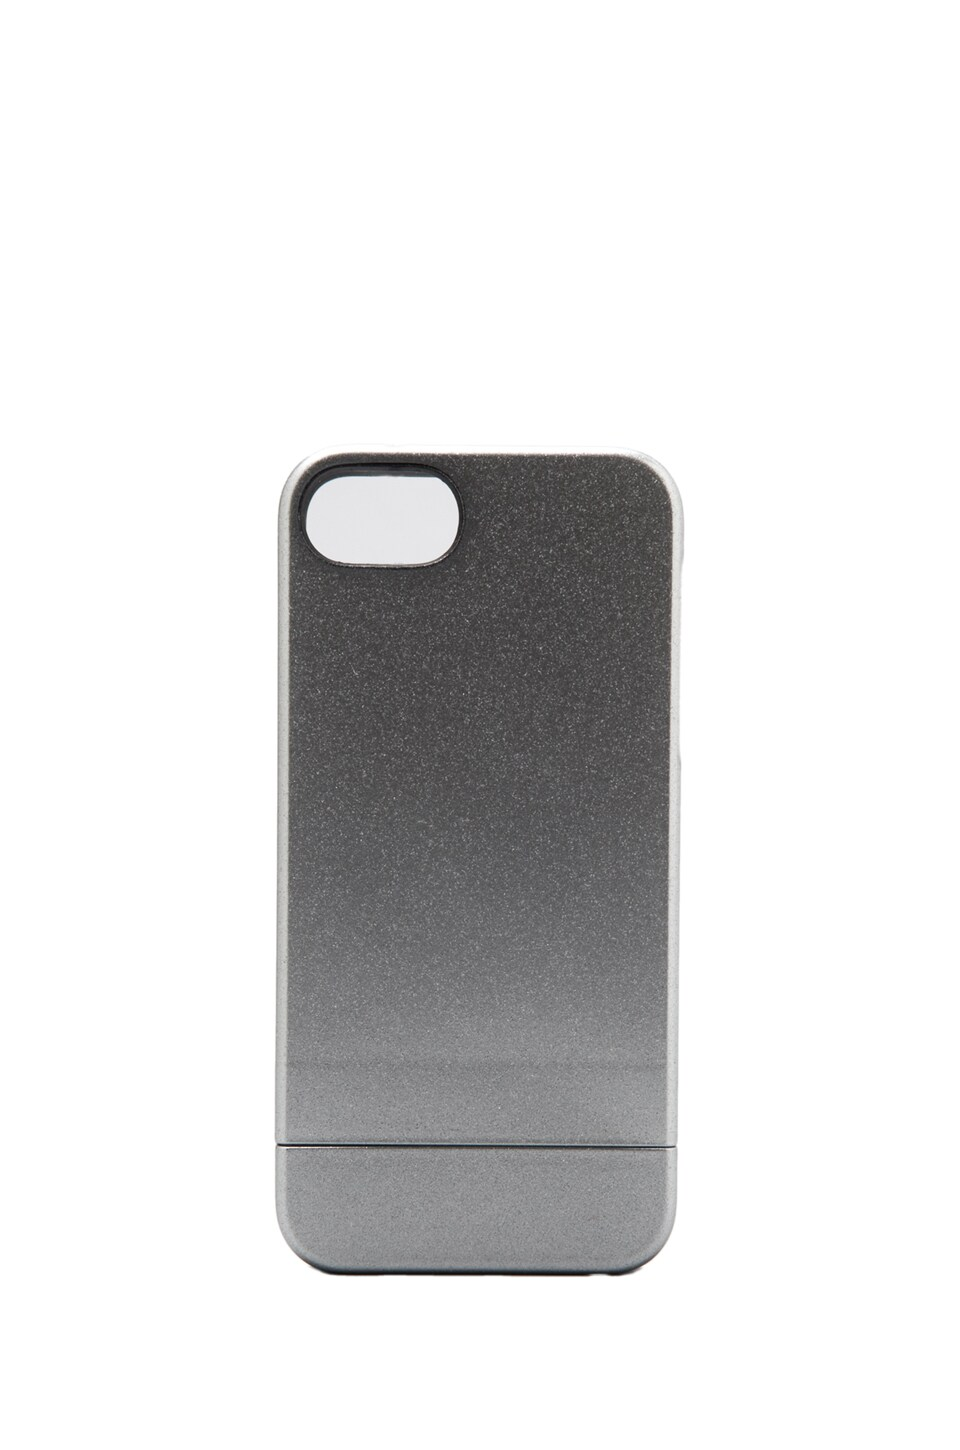 INCASE iPhone 5 Crystal Slider Case Snap Case in Silver